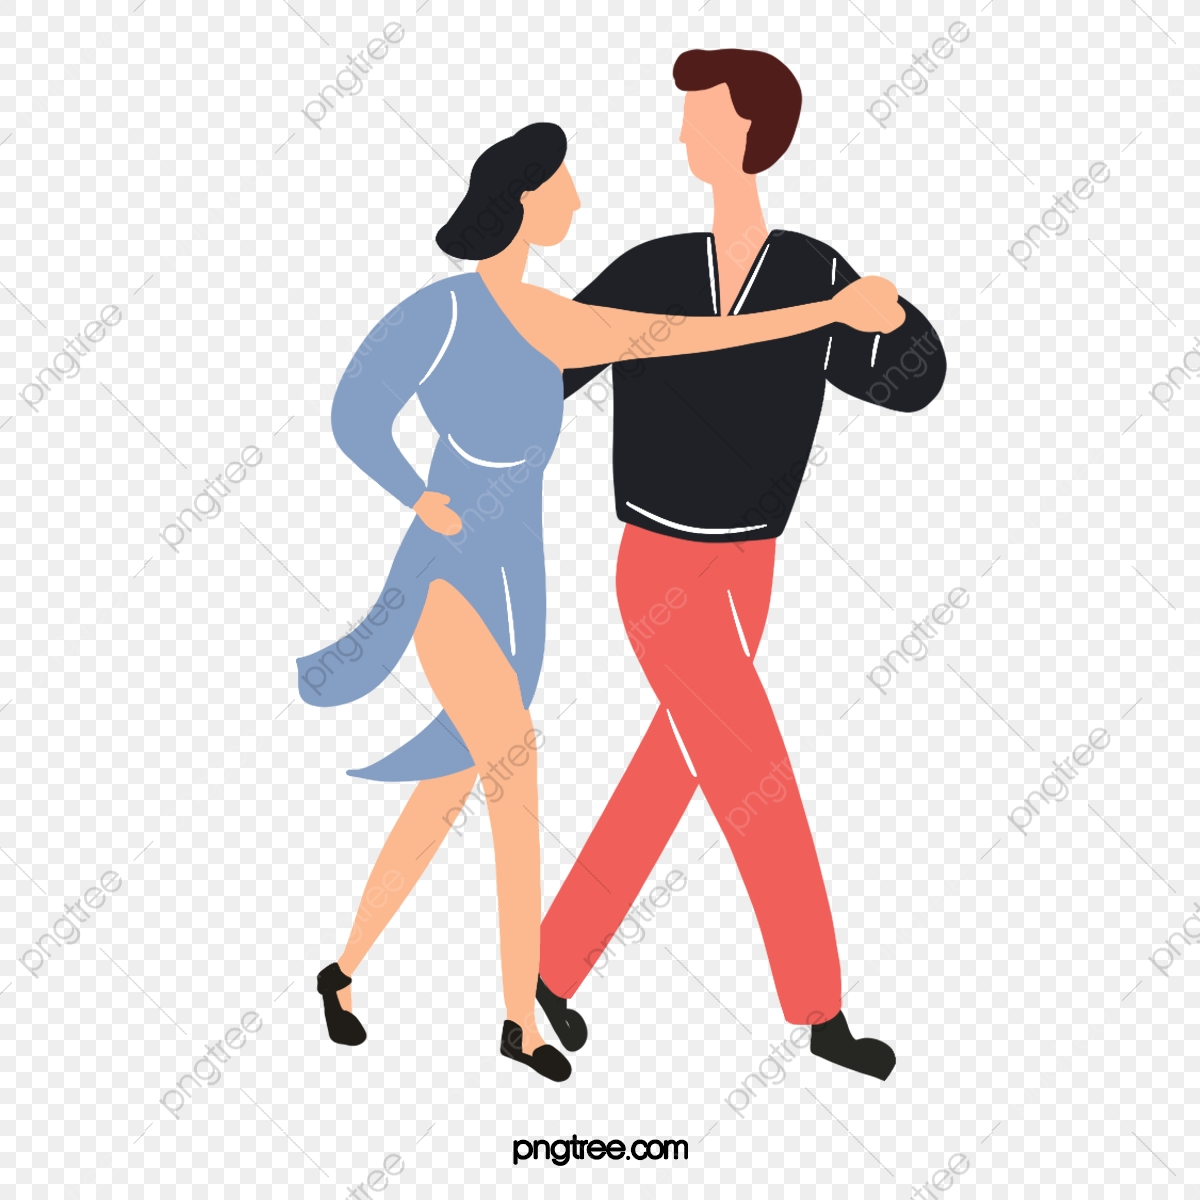 Cartoon Hand Drawn Male And Female Ballroom Dancing Skirt Illustration Skirt Ballroom Dance Suit Png Transparent Clipart Image And Psd File For Free Download